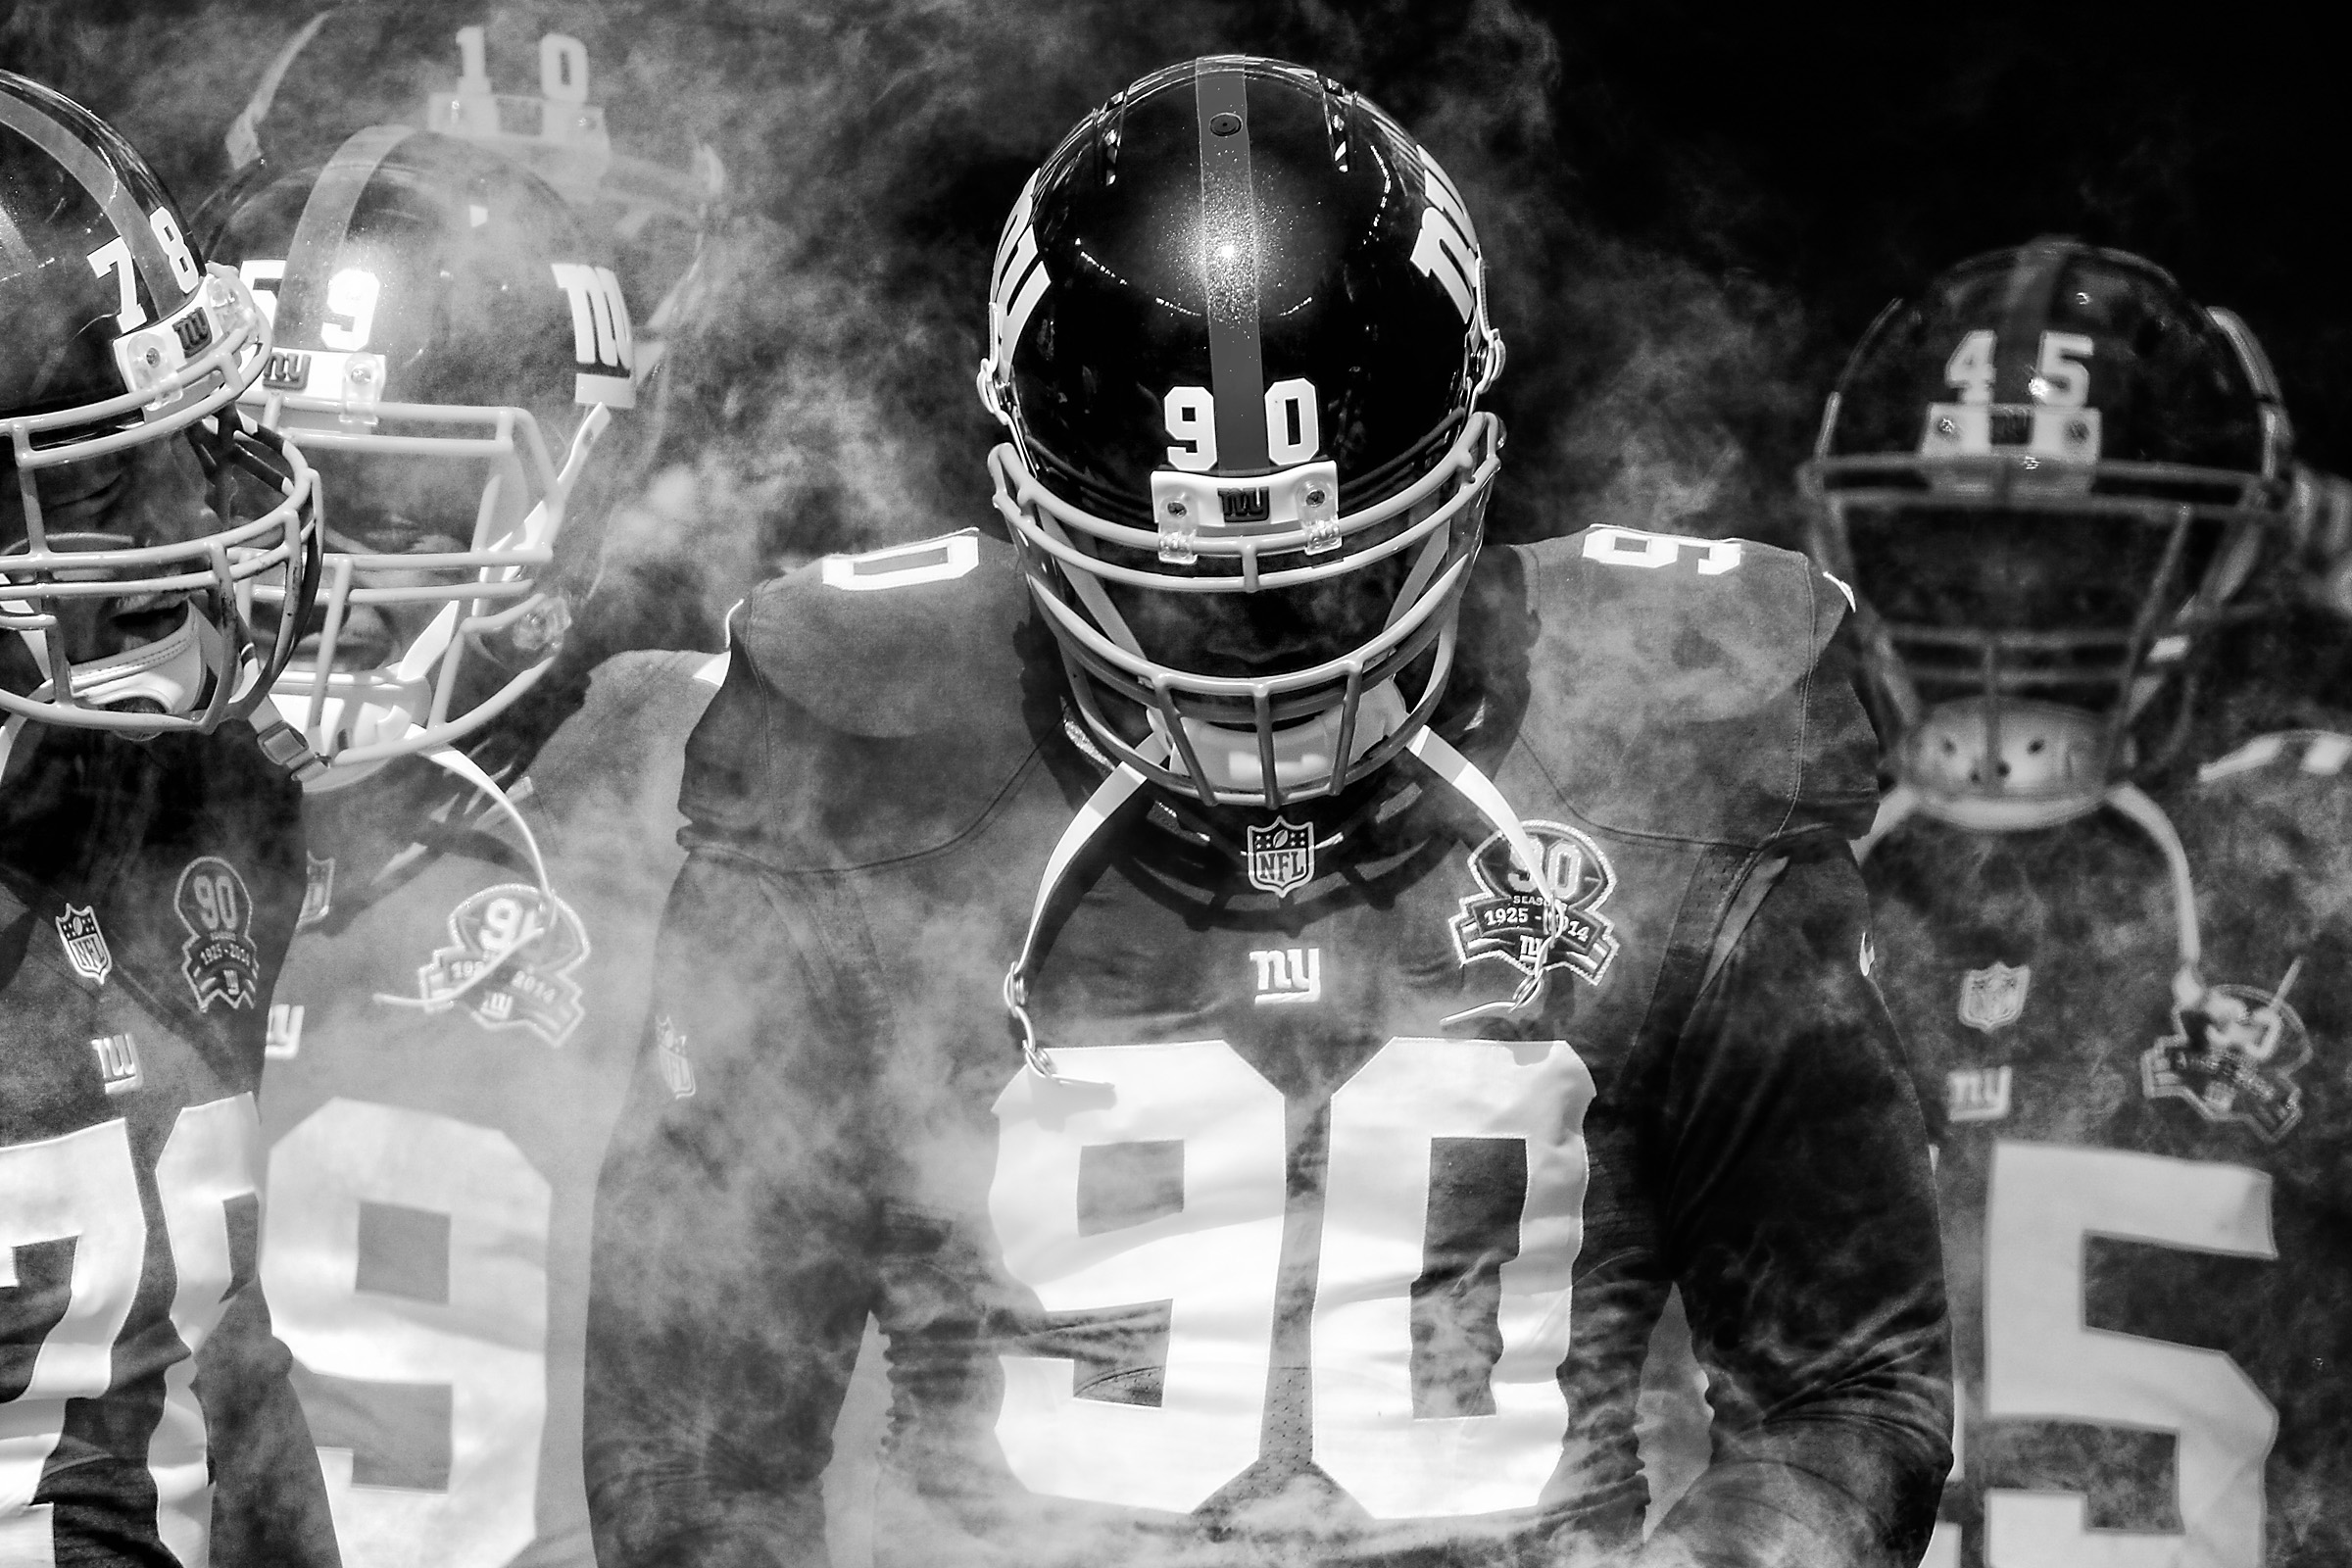 Giants in the smoke (final).jpg